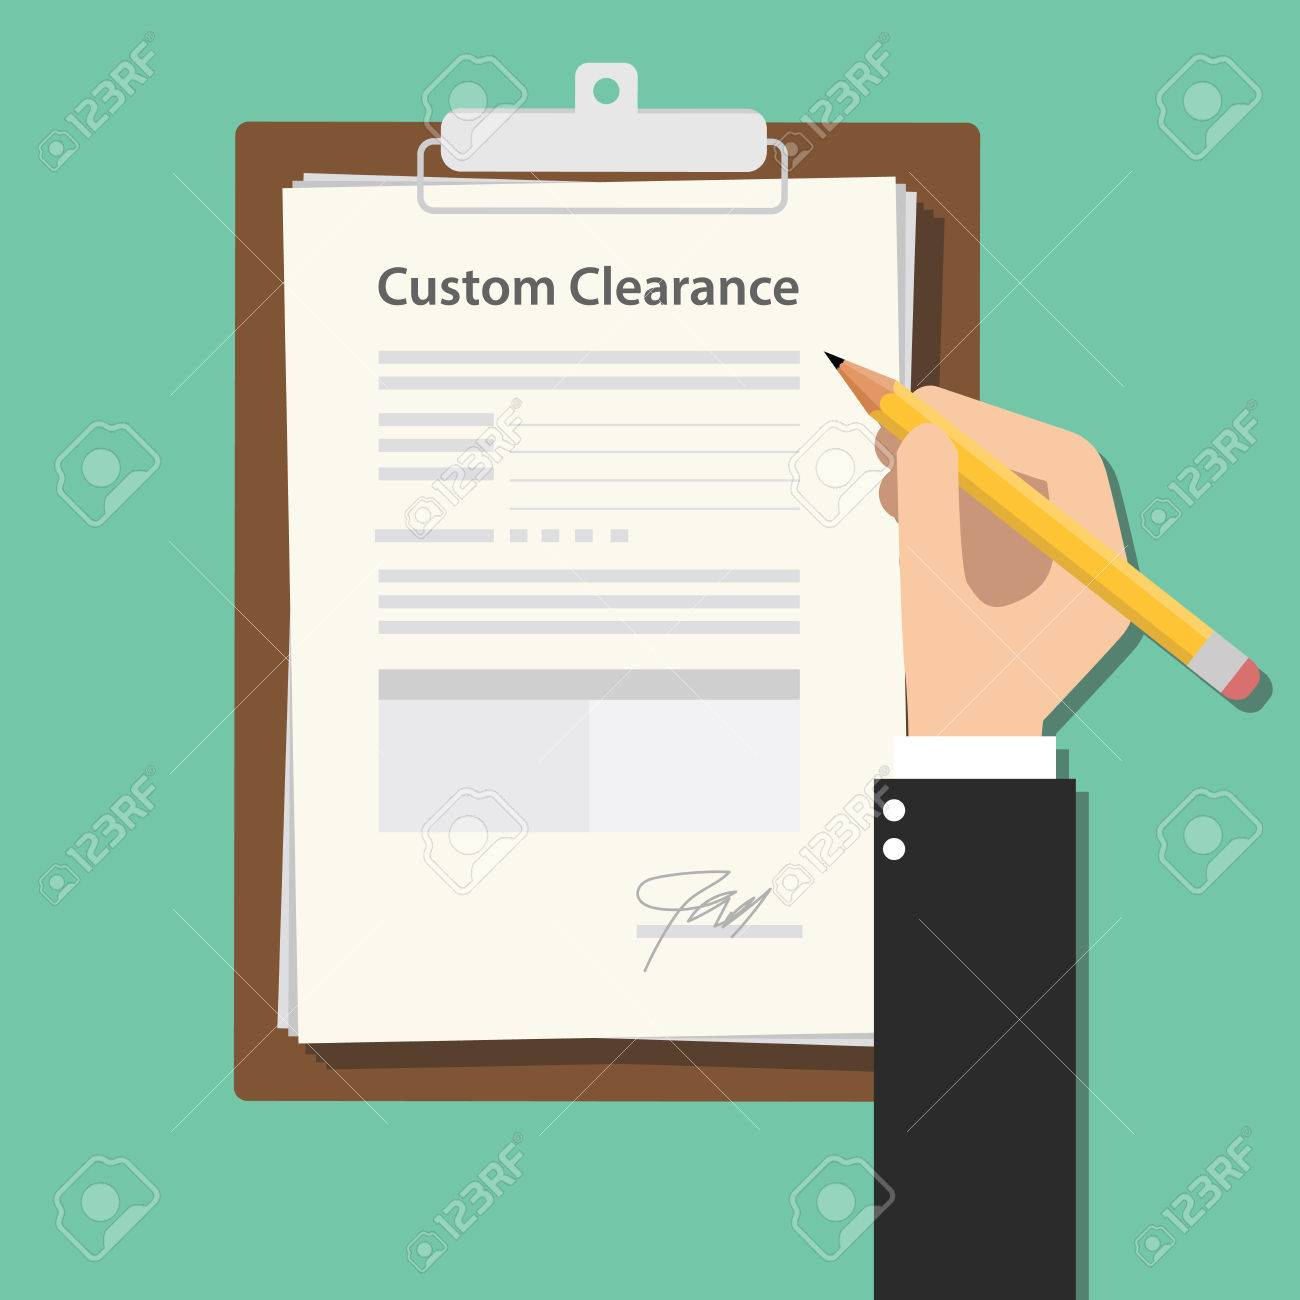 custom clearance hand signing a paper document work on clipboard rh 123rf com clipboard vector graphic clipboard vector free